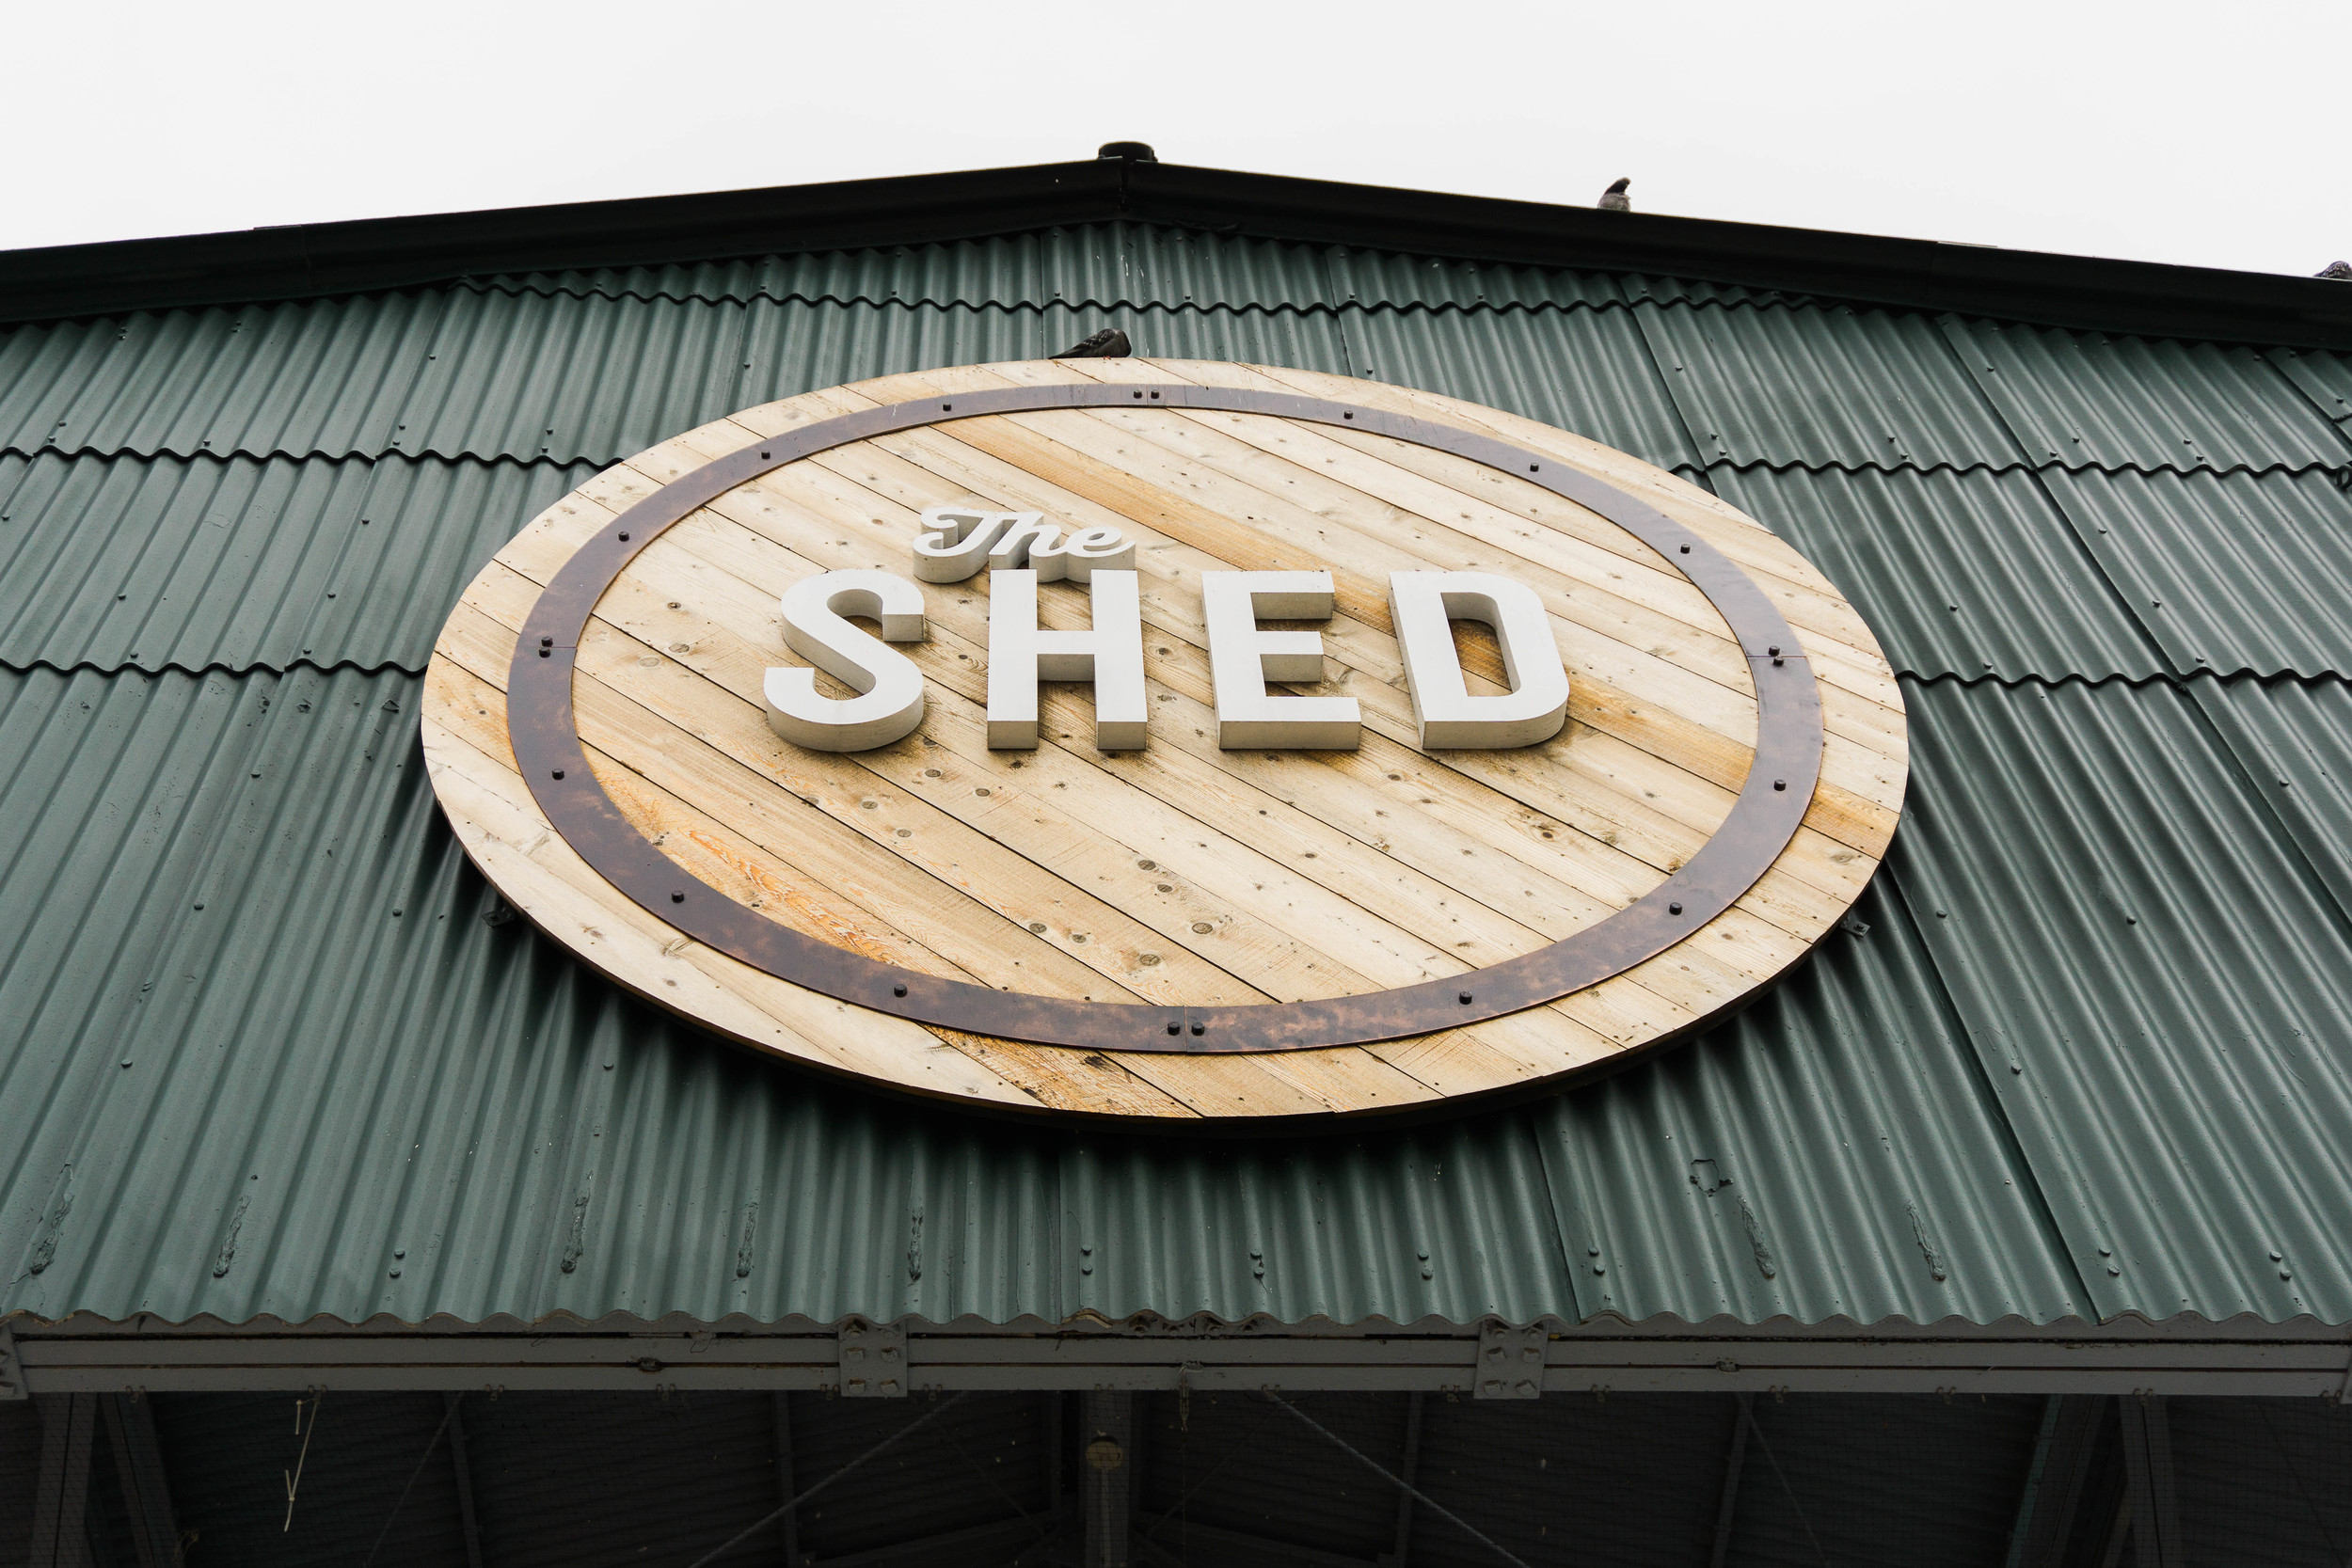 The Shed at the Dallas Farmer's Market